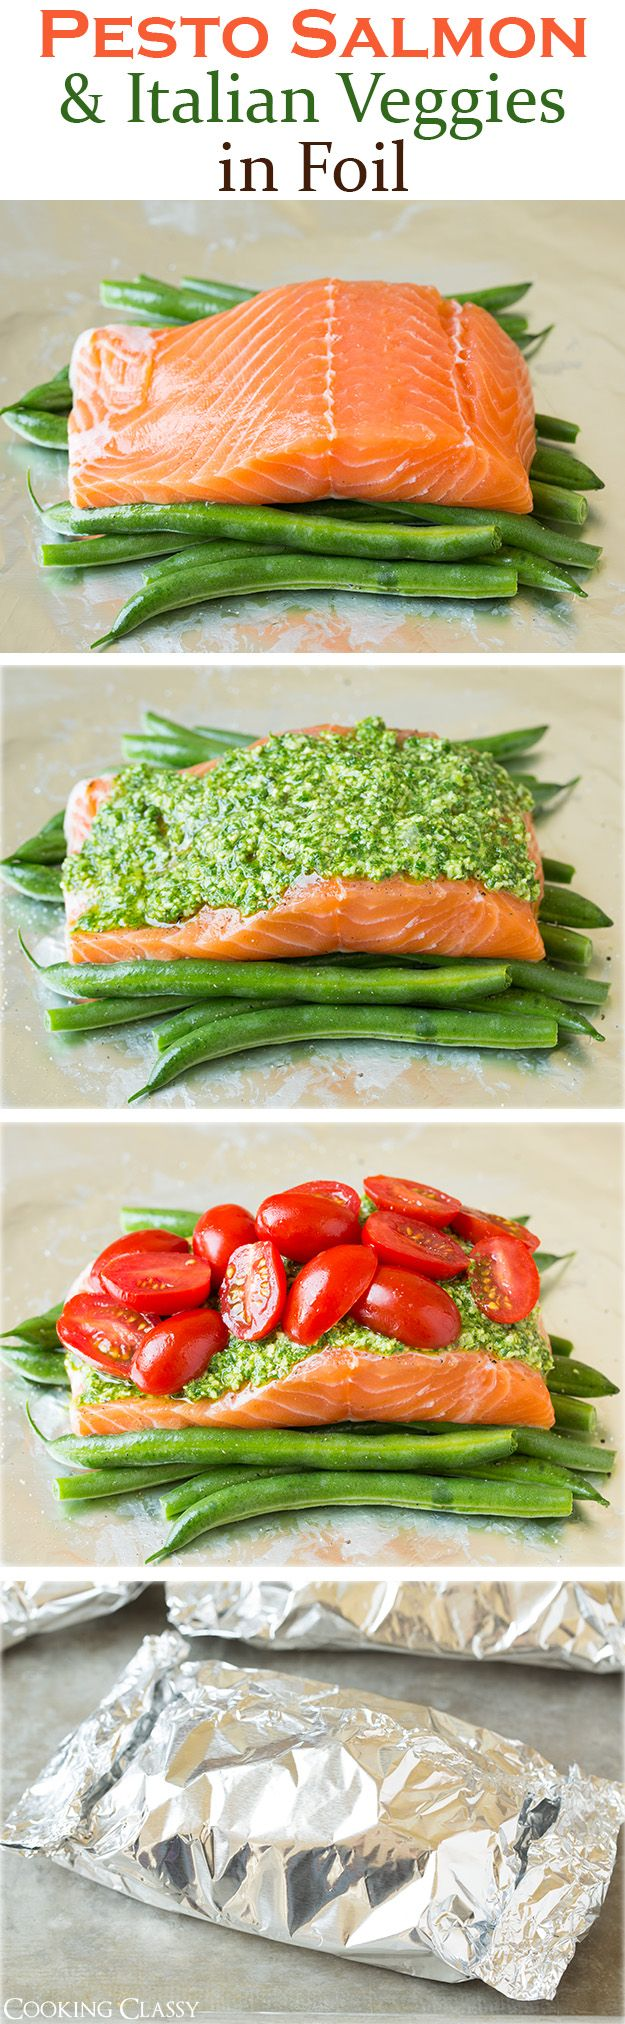 jewelry for Pesto Salmon and Italian Veggies in Foil   this is an easy  flavorful dinner that is sure to please  So delicious